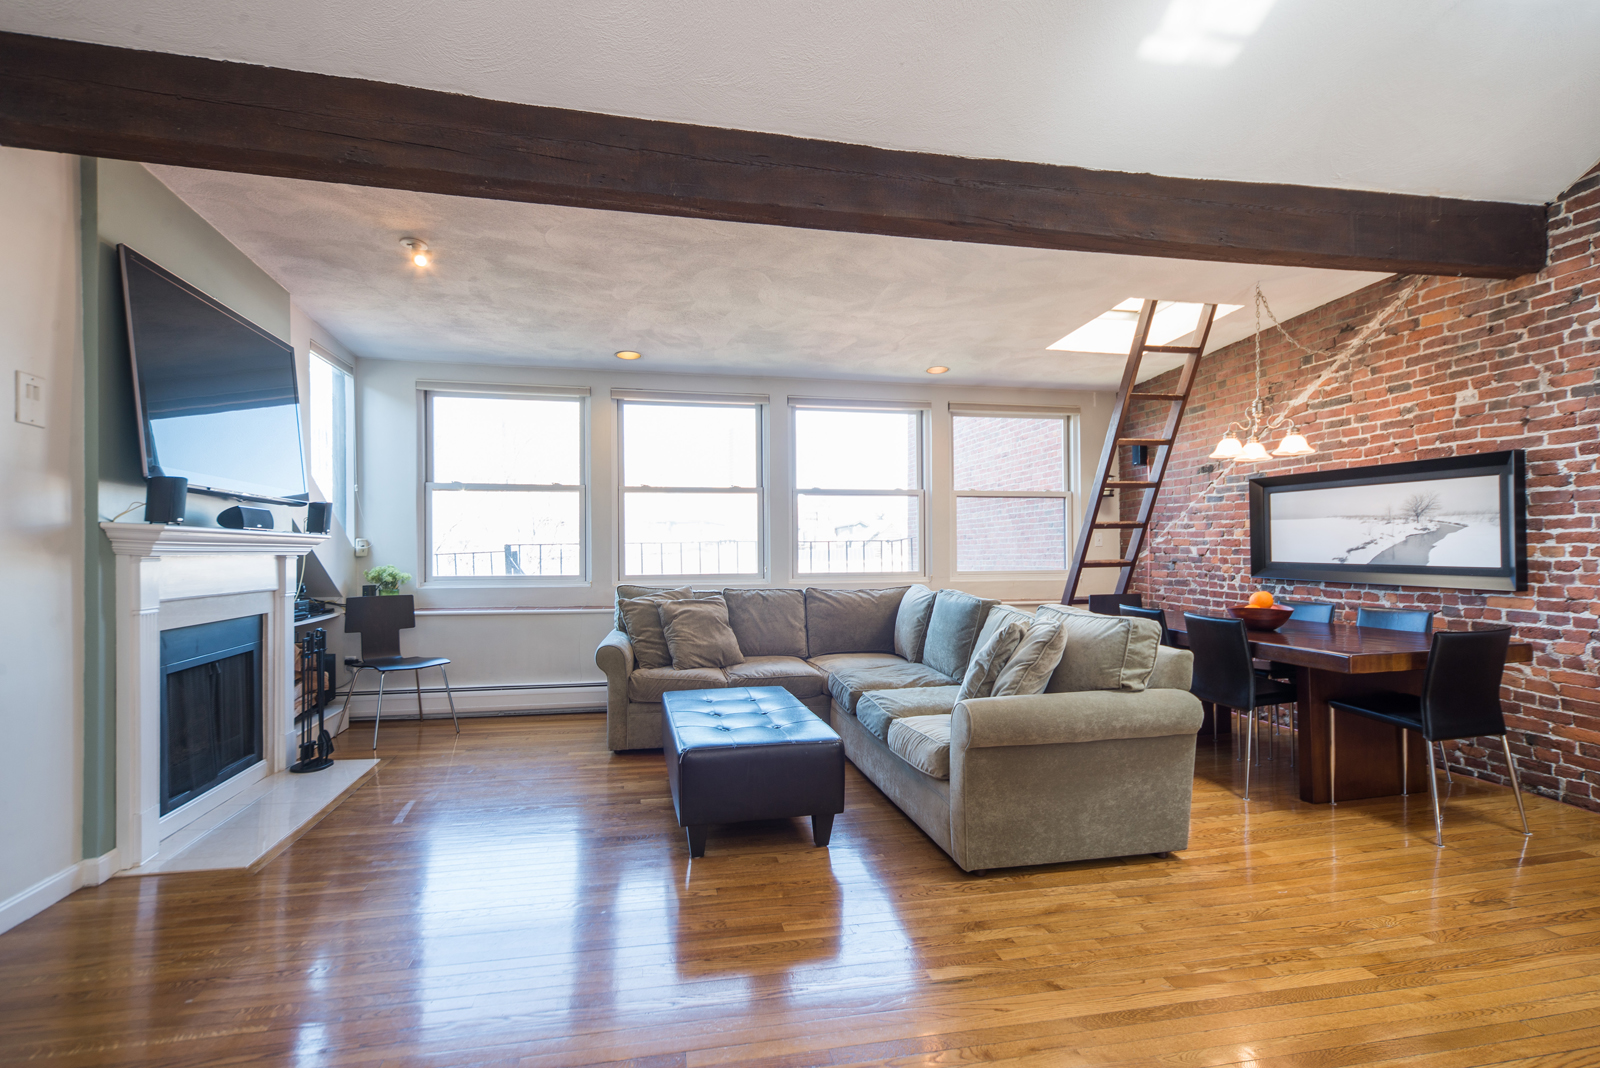 Condominium for Sale at Stunning Two Bedroom Penthouse 609 Tremont Street Unit 4 South End, Boston, Massachusetts, 02118 United States